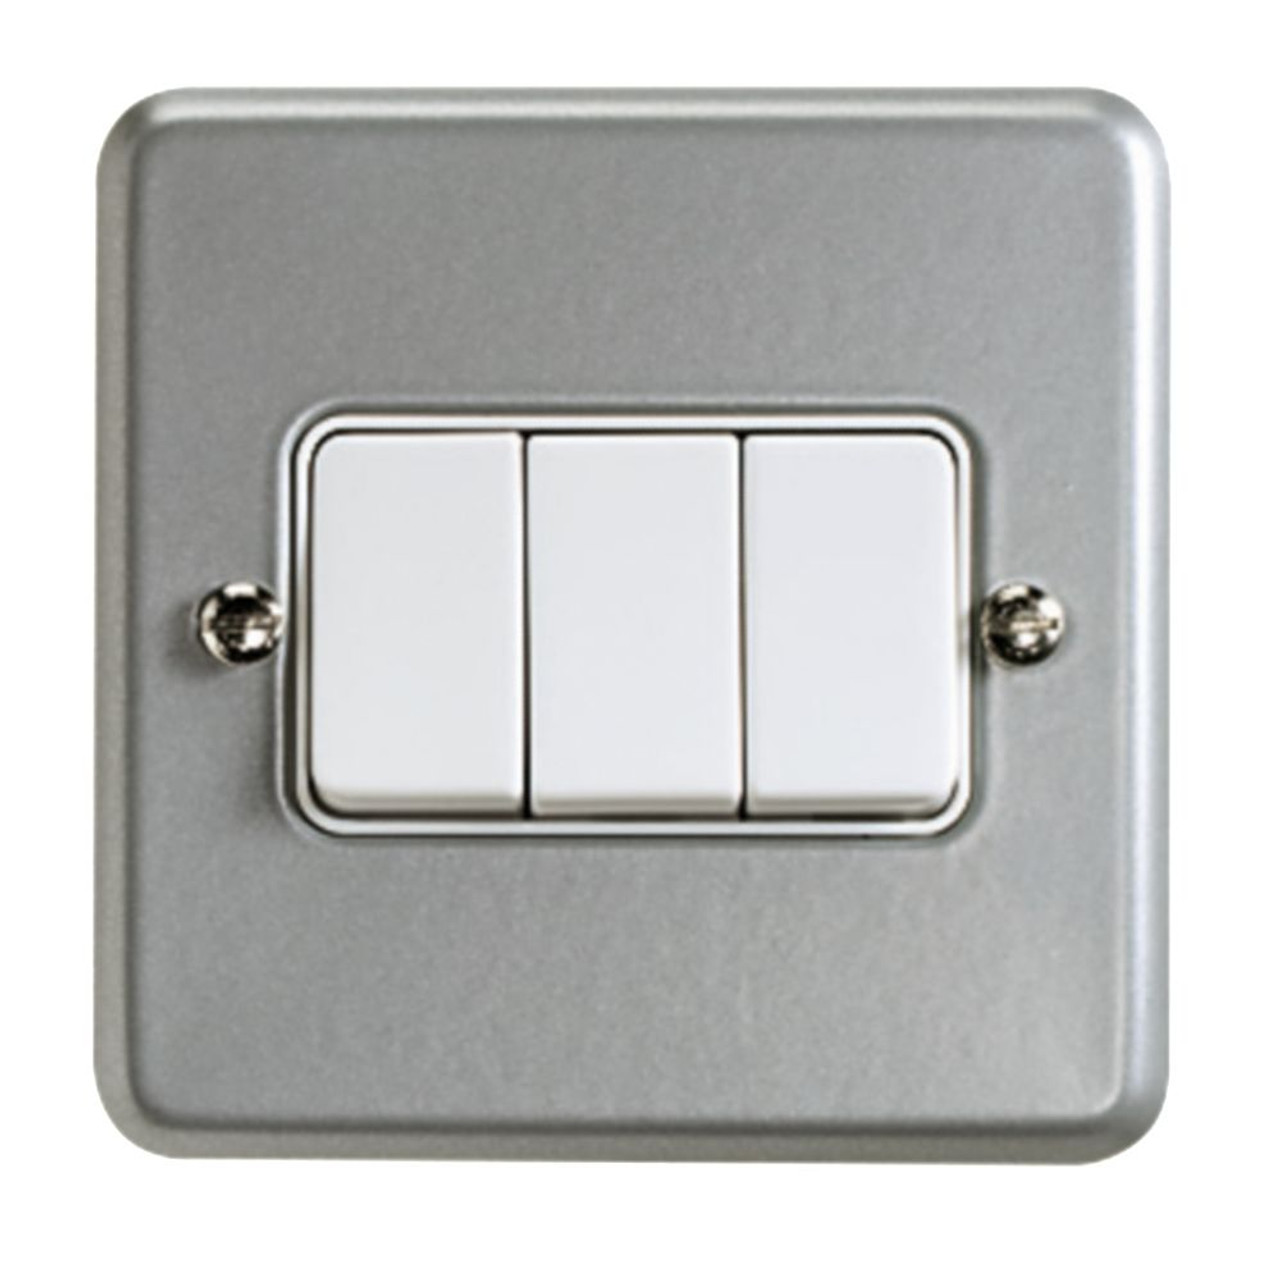 Buy 3 GANG SWITCH WITH METAL CLAD ELECTRICAL SWITCH from GZ ...